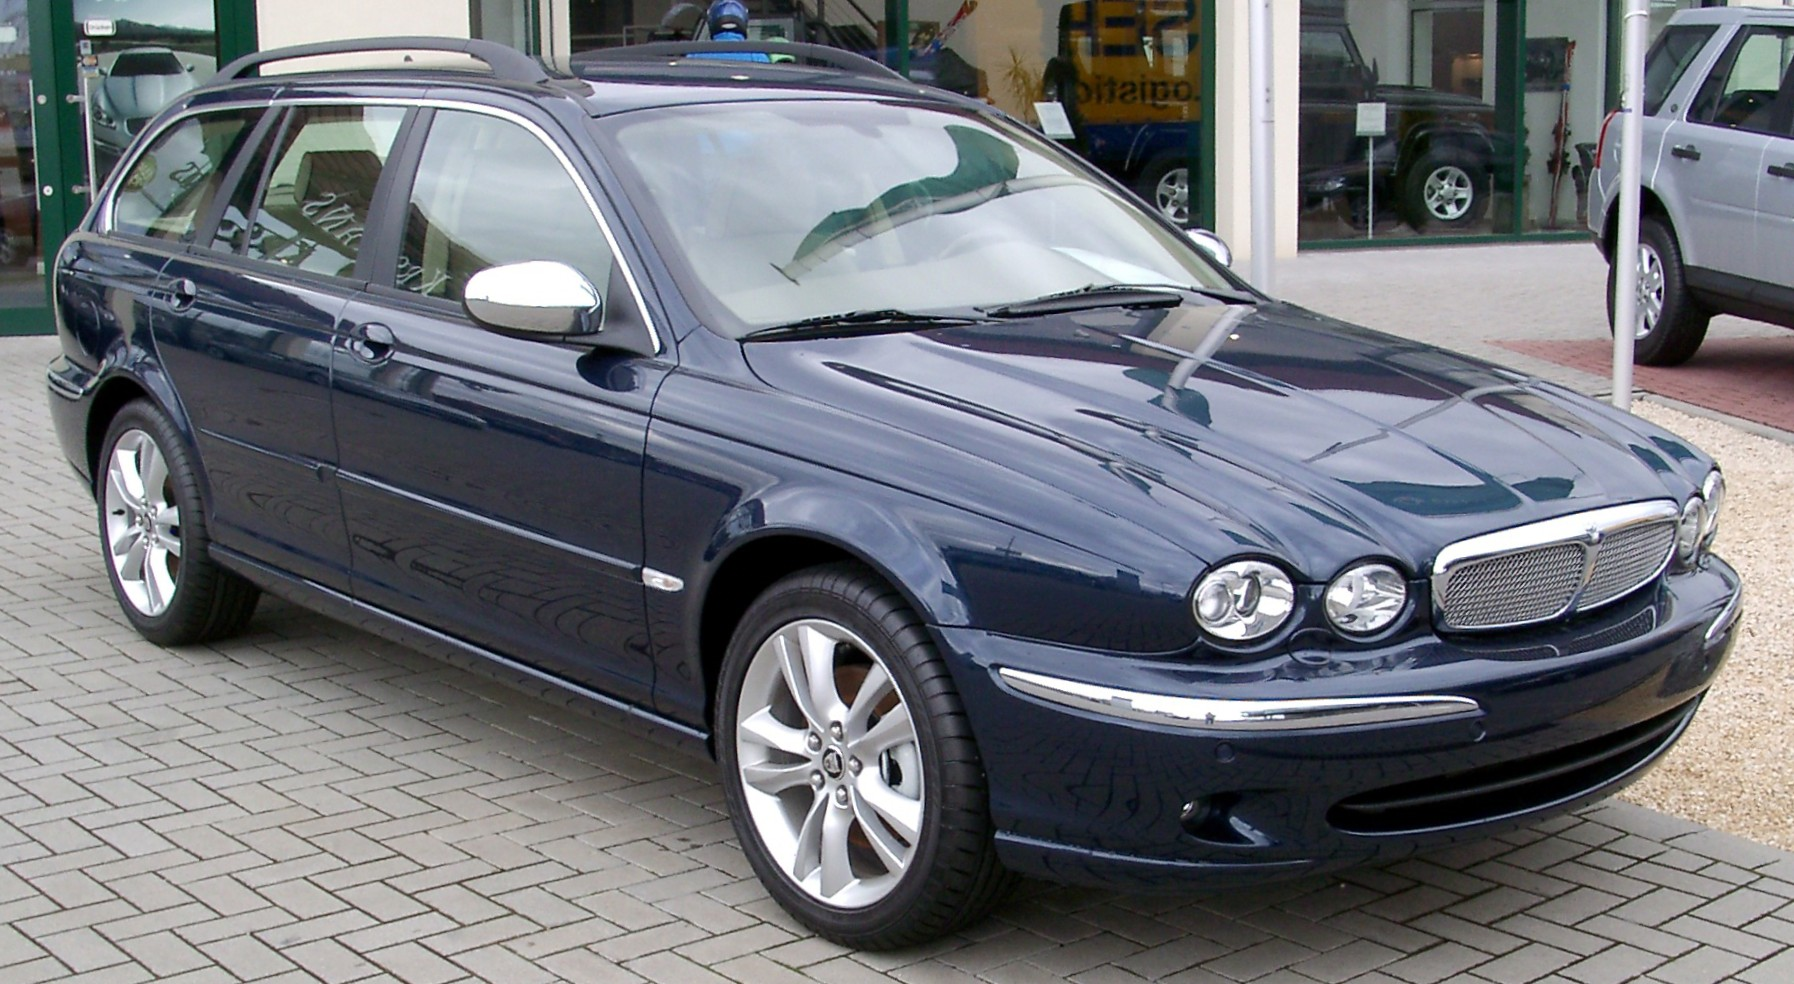 Jaguar x-type photo - 4